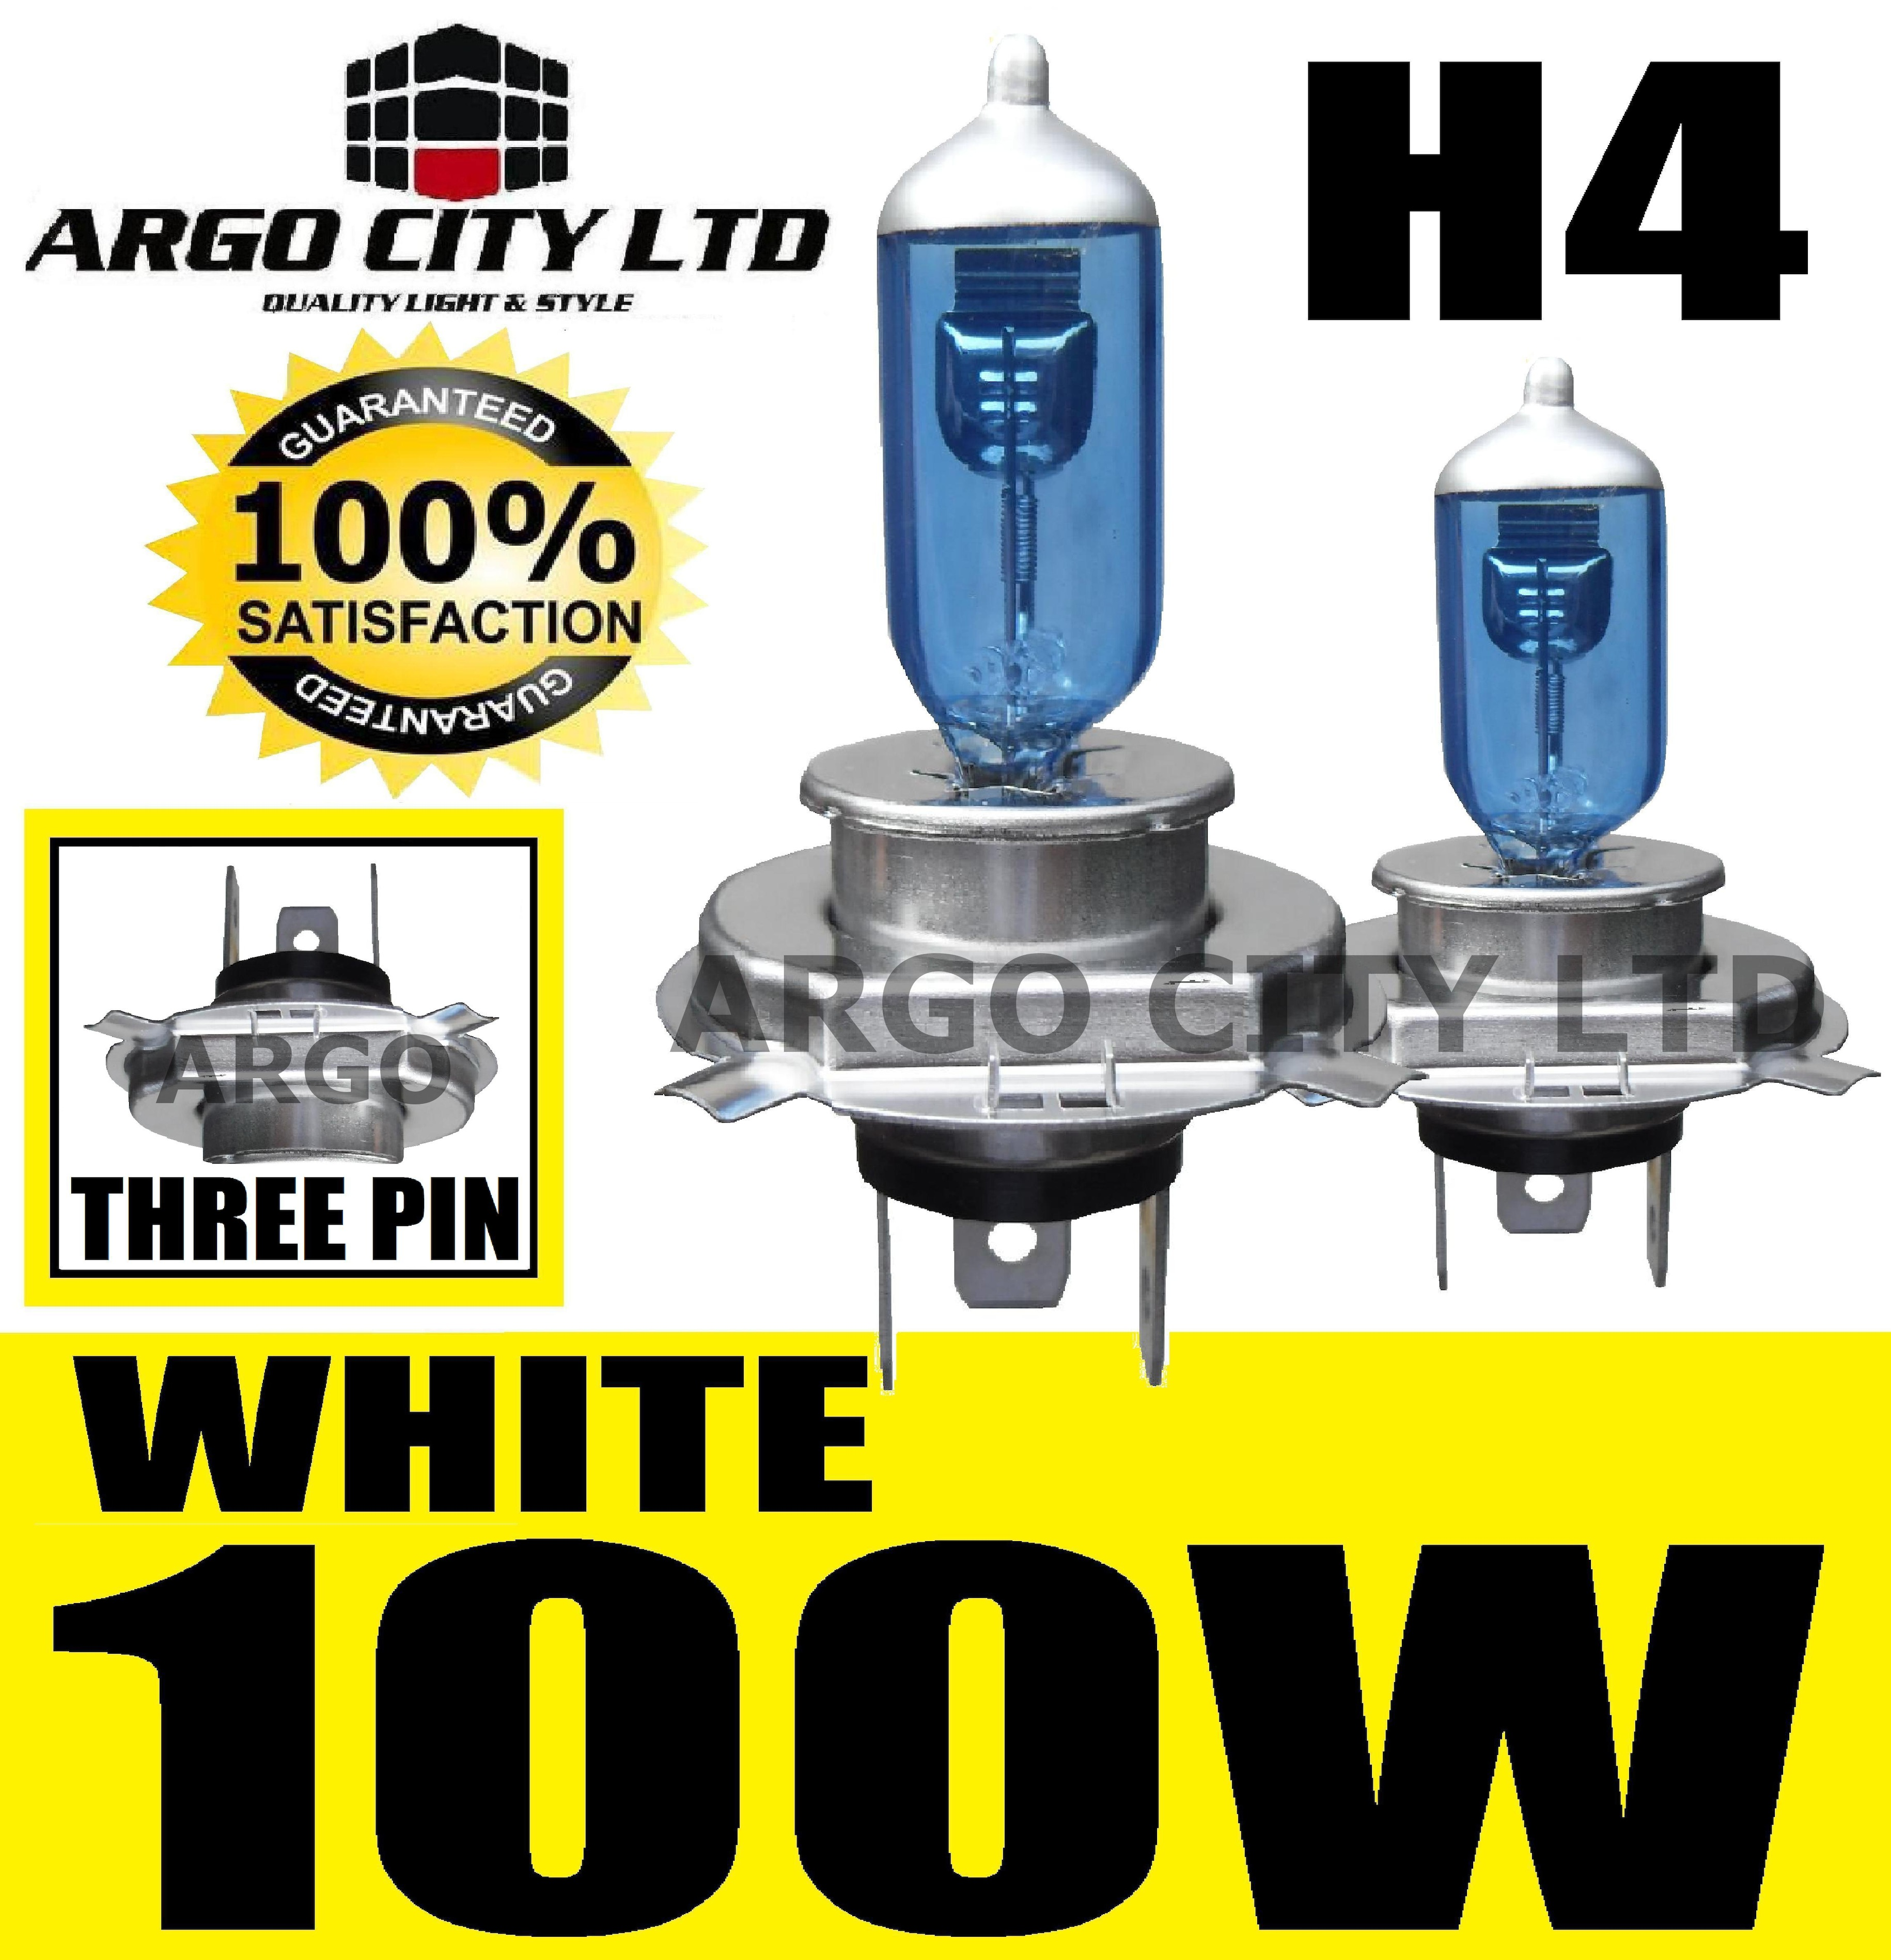 H4 XENON WHITE 100W 472 HEADLIGHT BULBS HARLEY DAVIDSON FXSTD 1450 Deuce